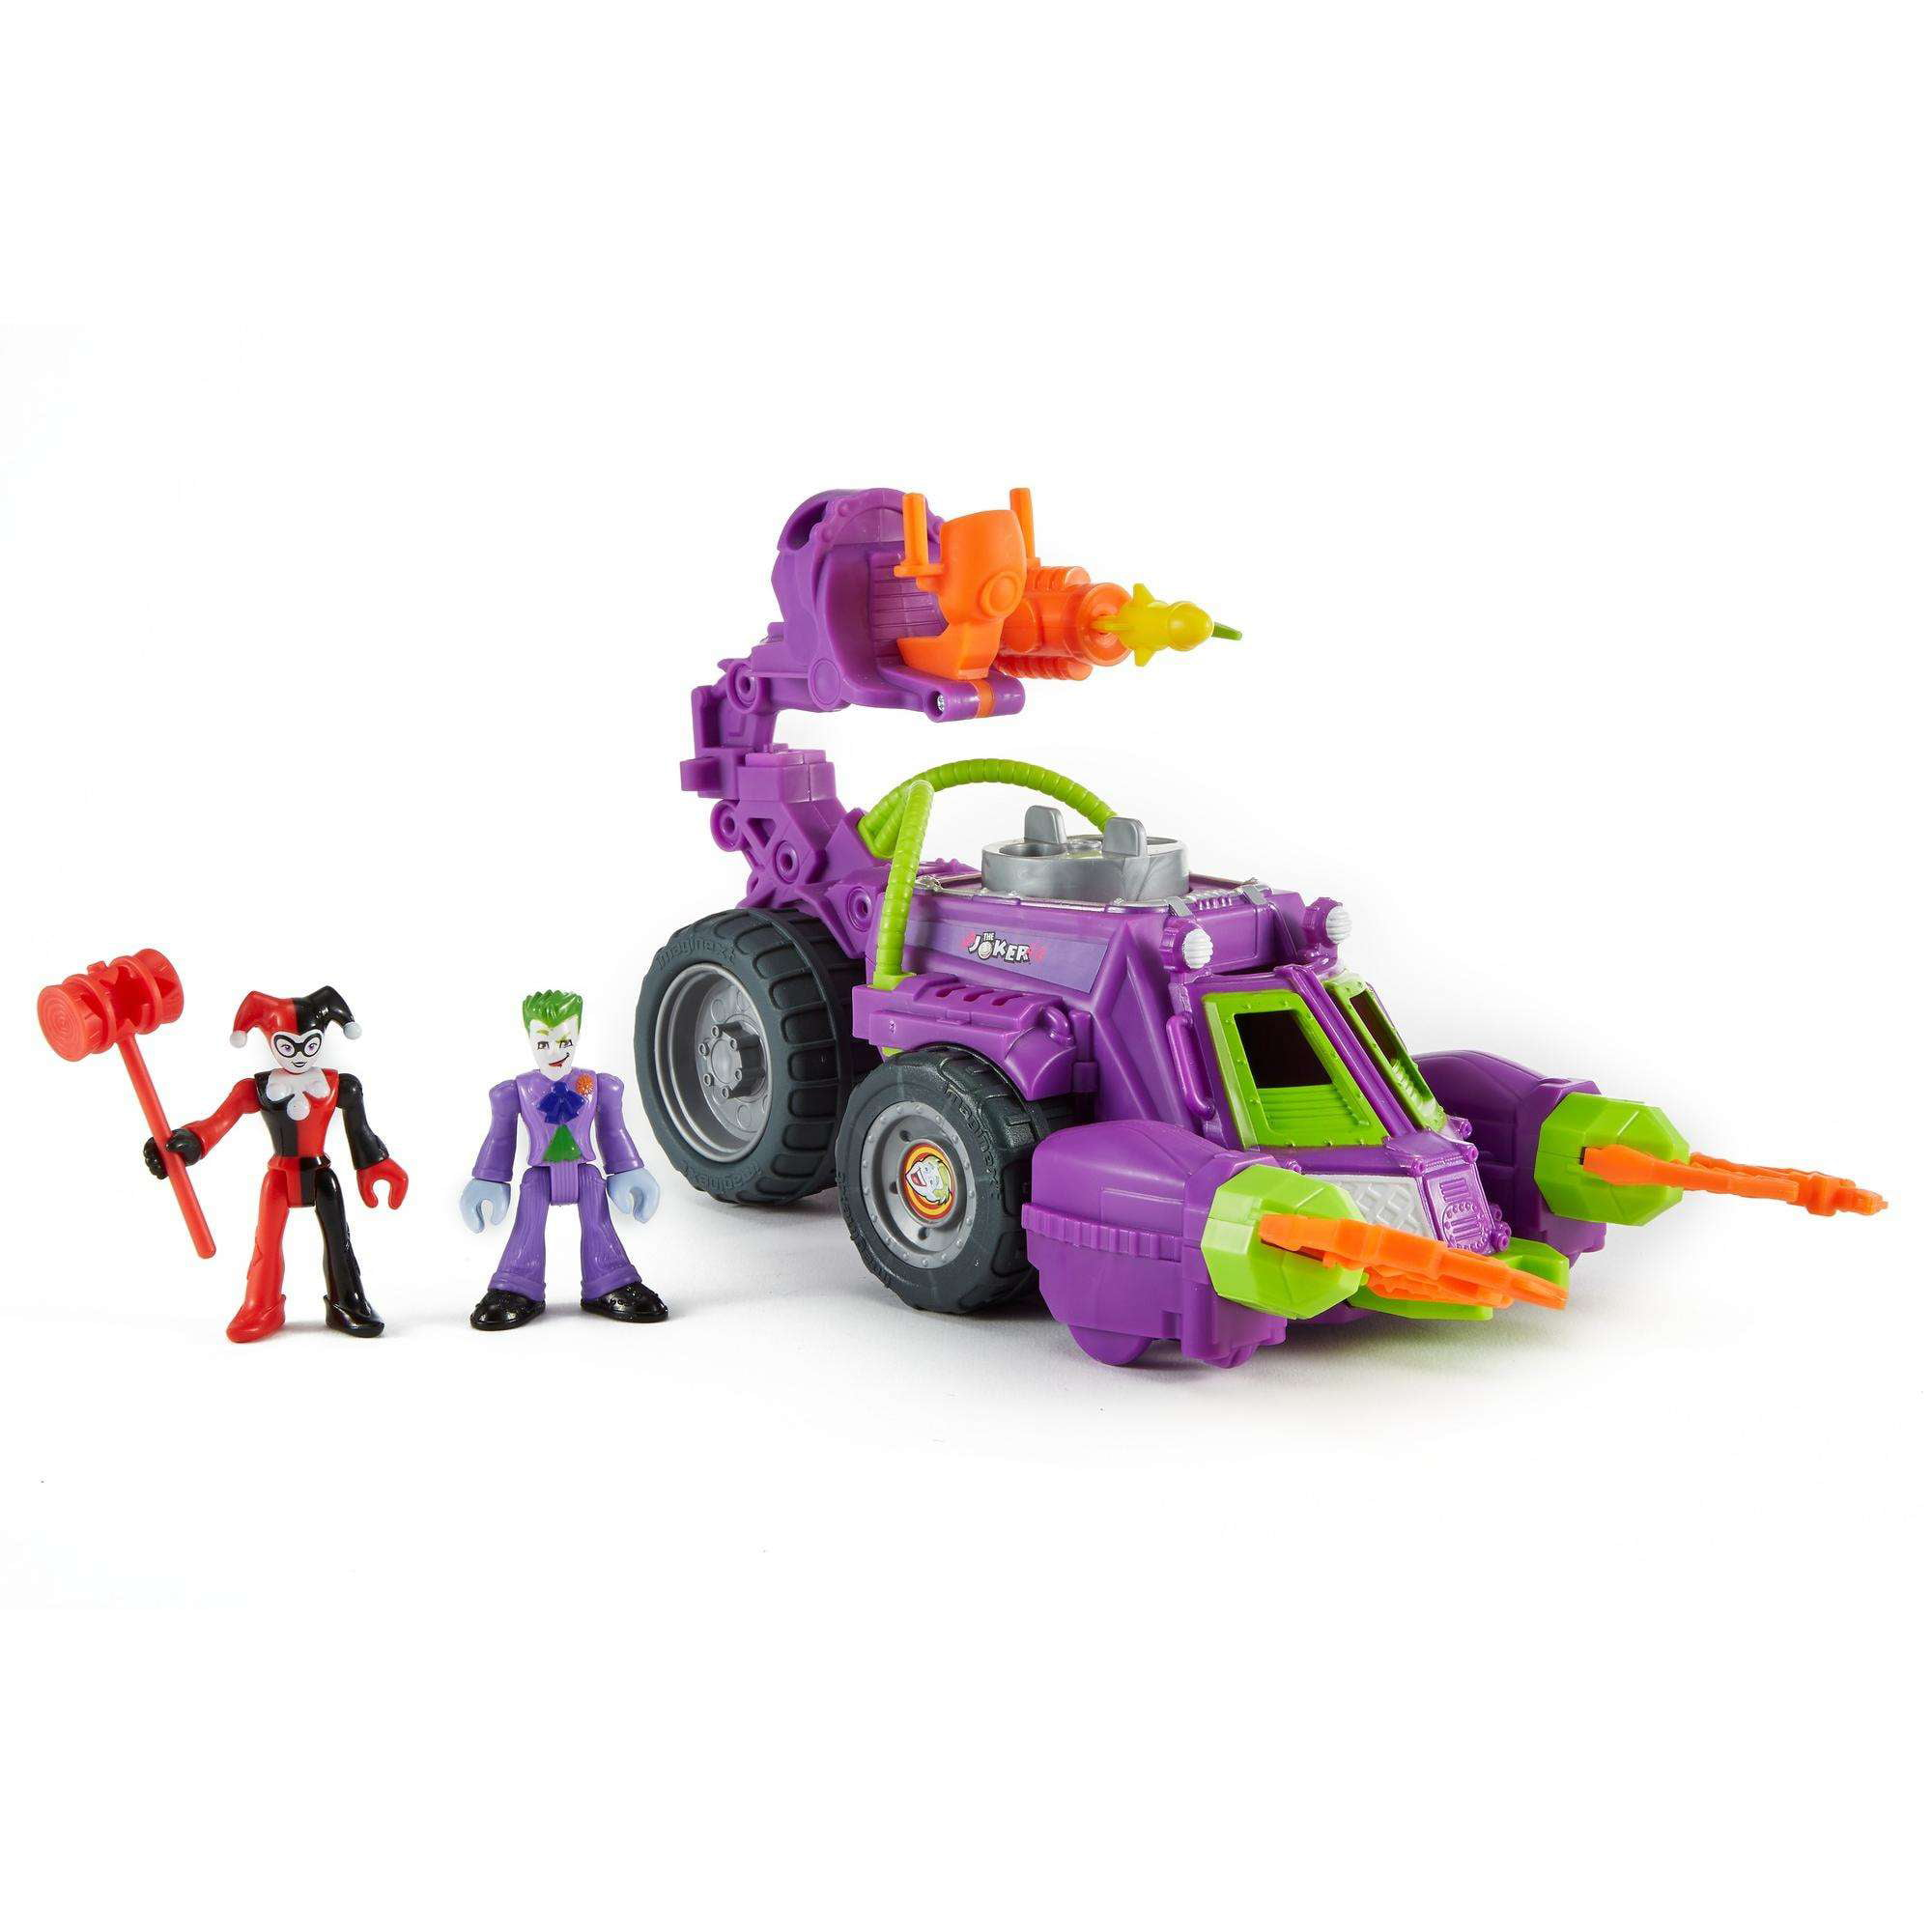 IMaginext DC Super Friends Joker & Harley Quinn Battle Vehicle by TBA